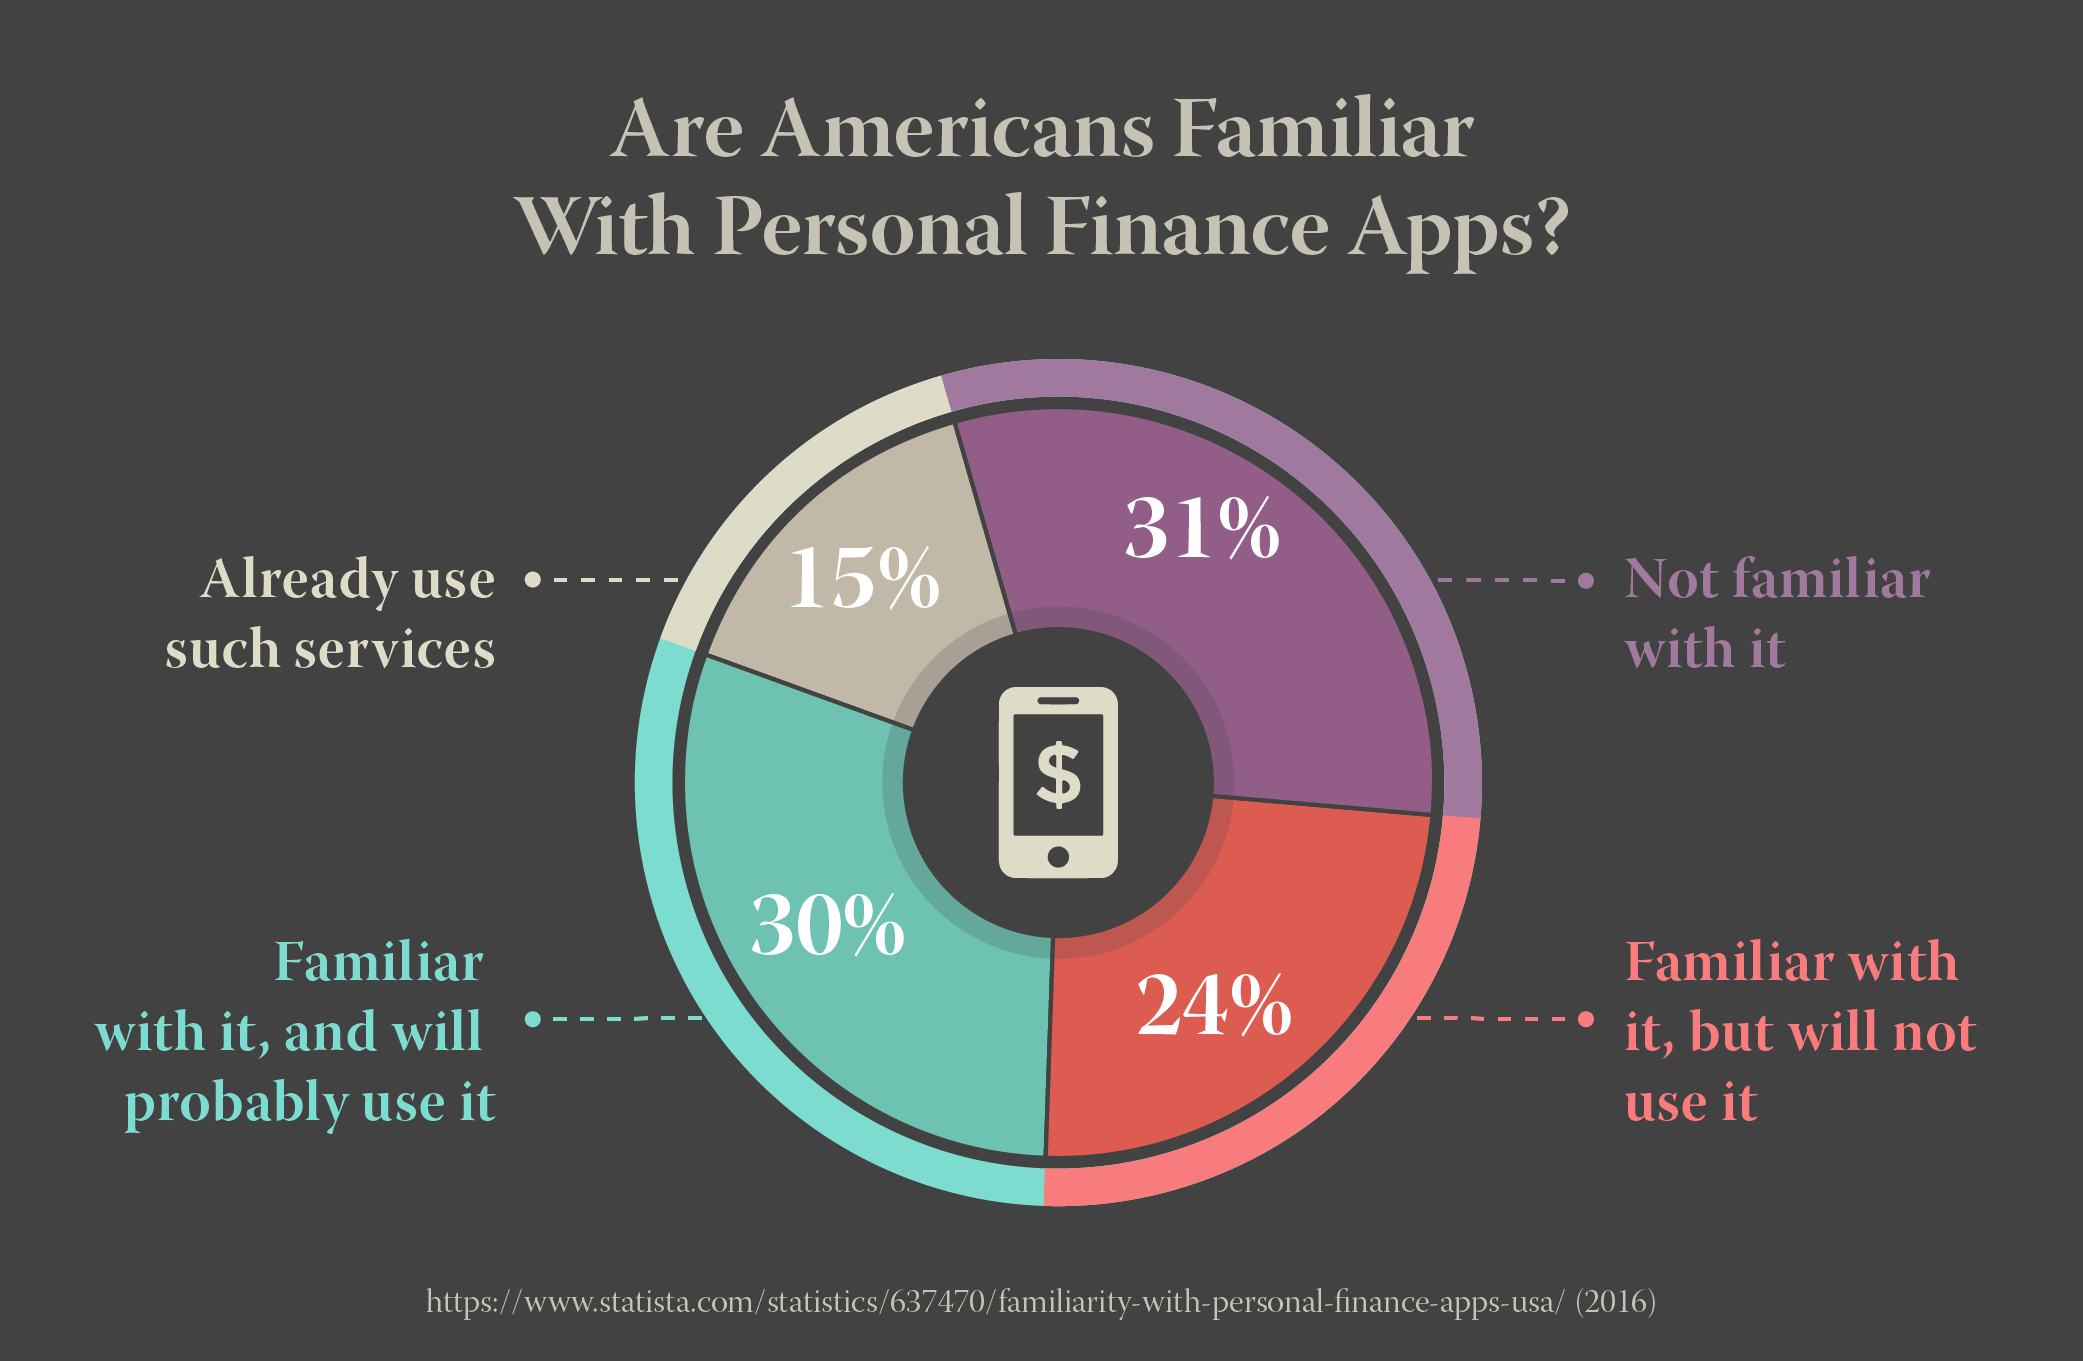 Are Americans Familiar With Personal Finance Apps? (2016)